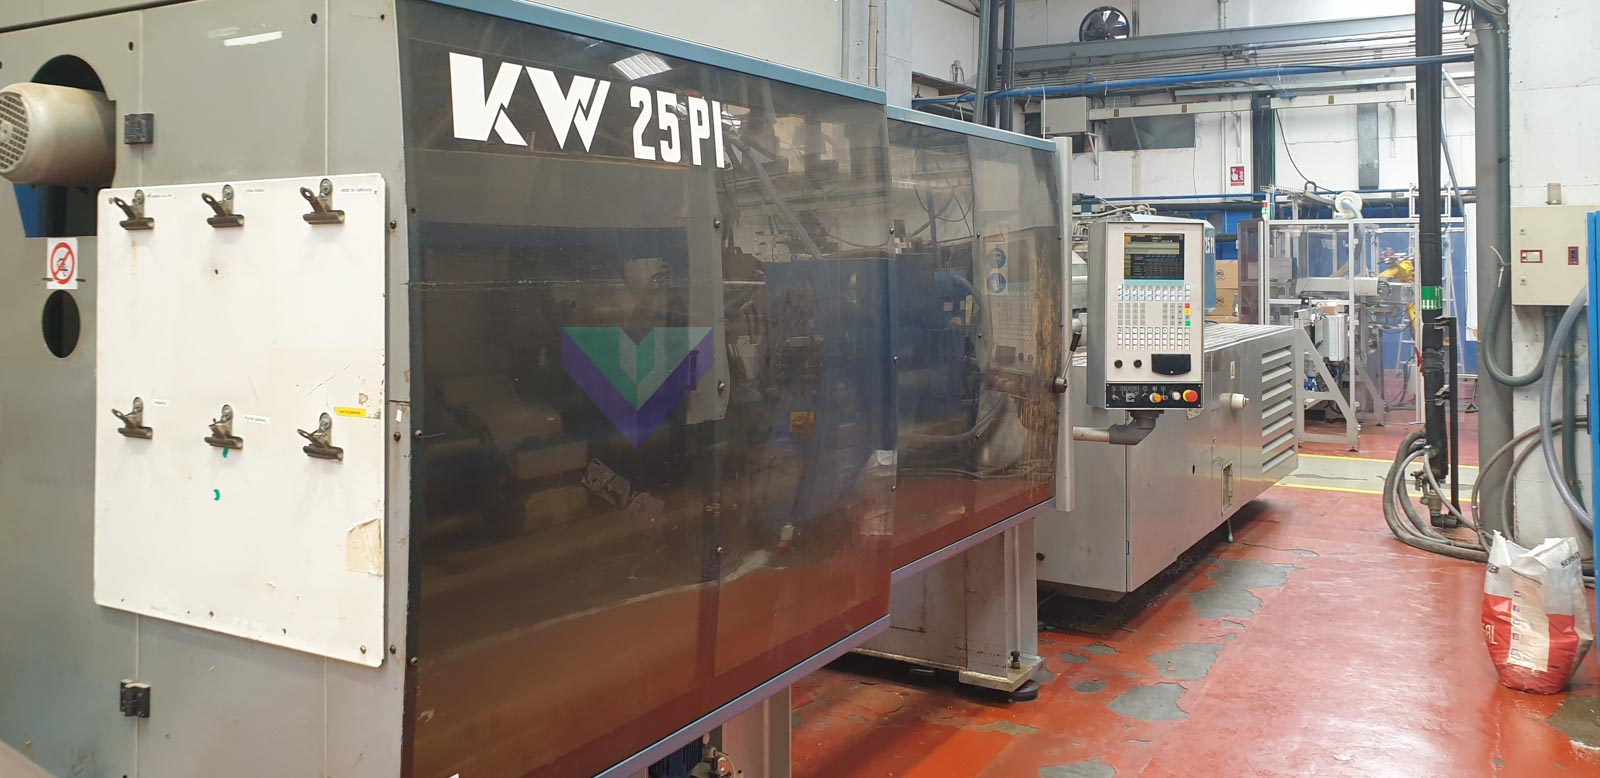 BMB KW 25 PI / 2200 250t injection molding machine (2000) id10509